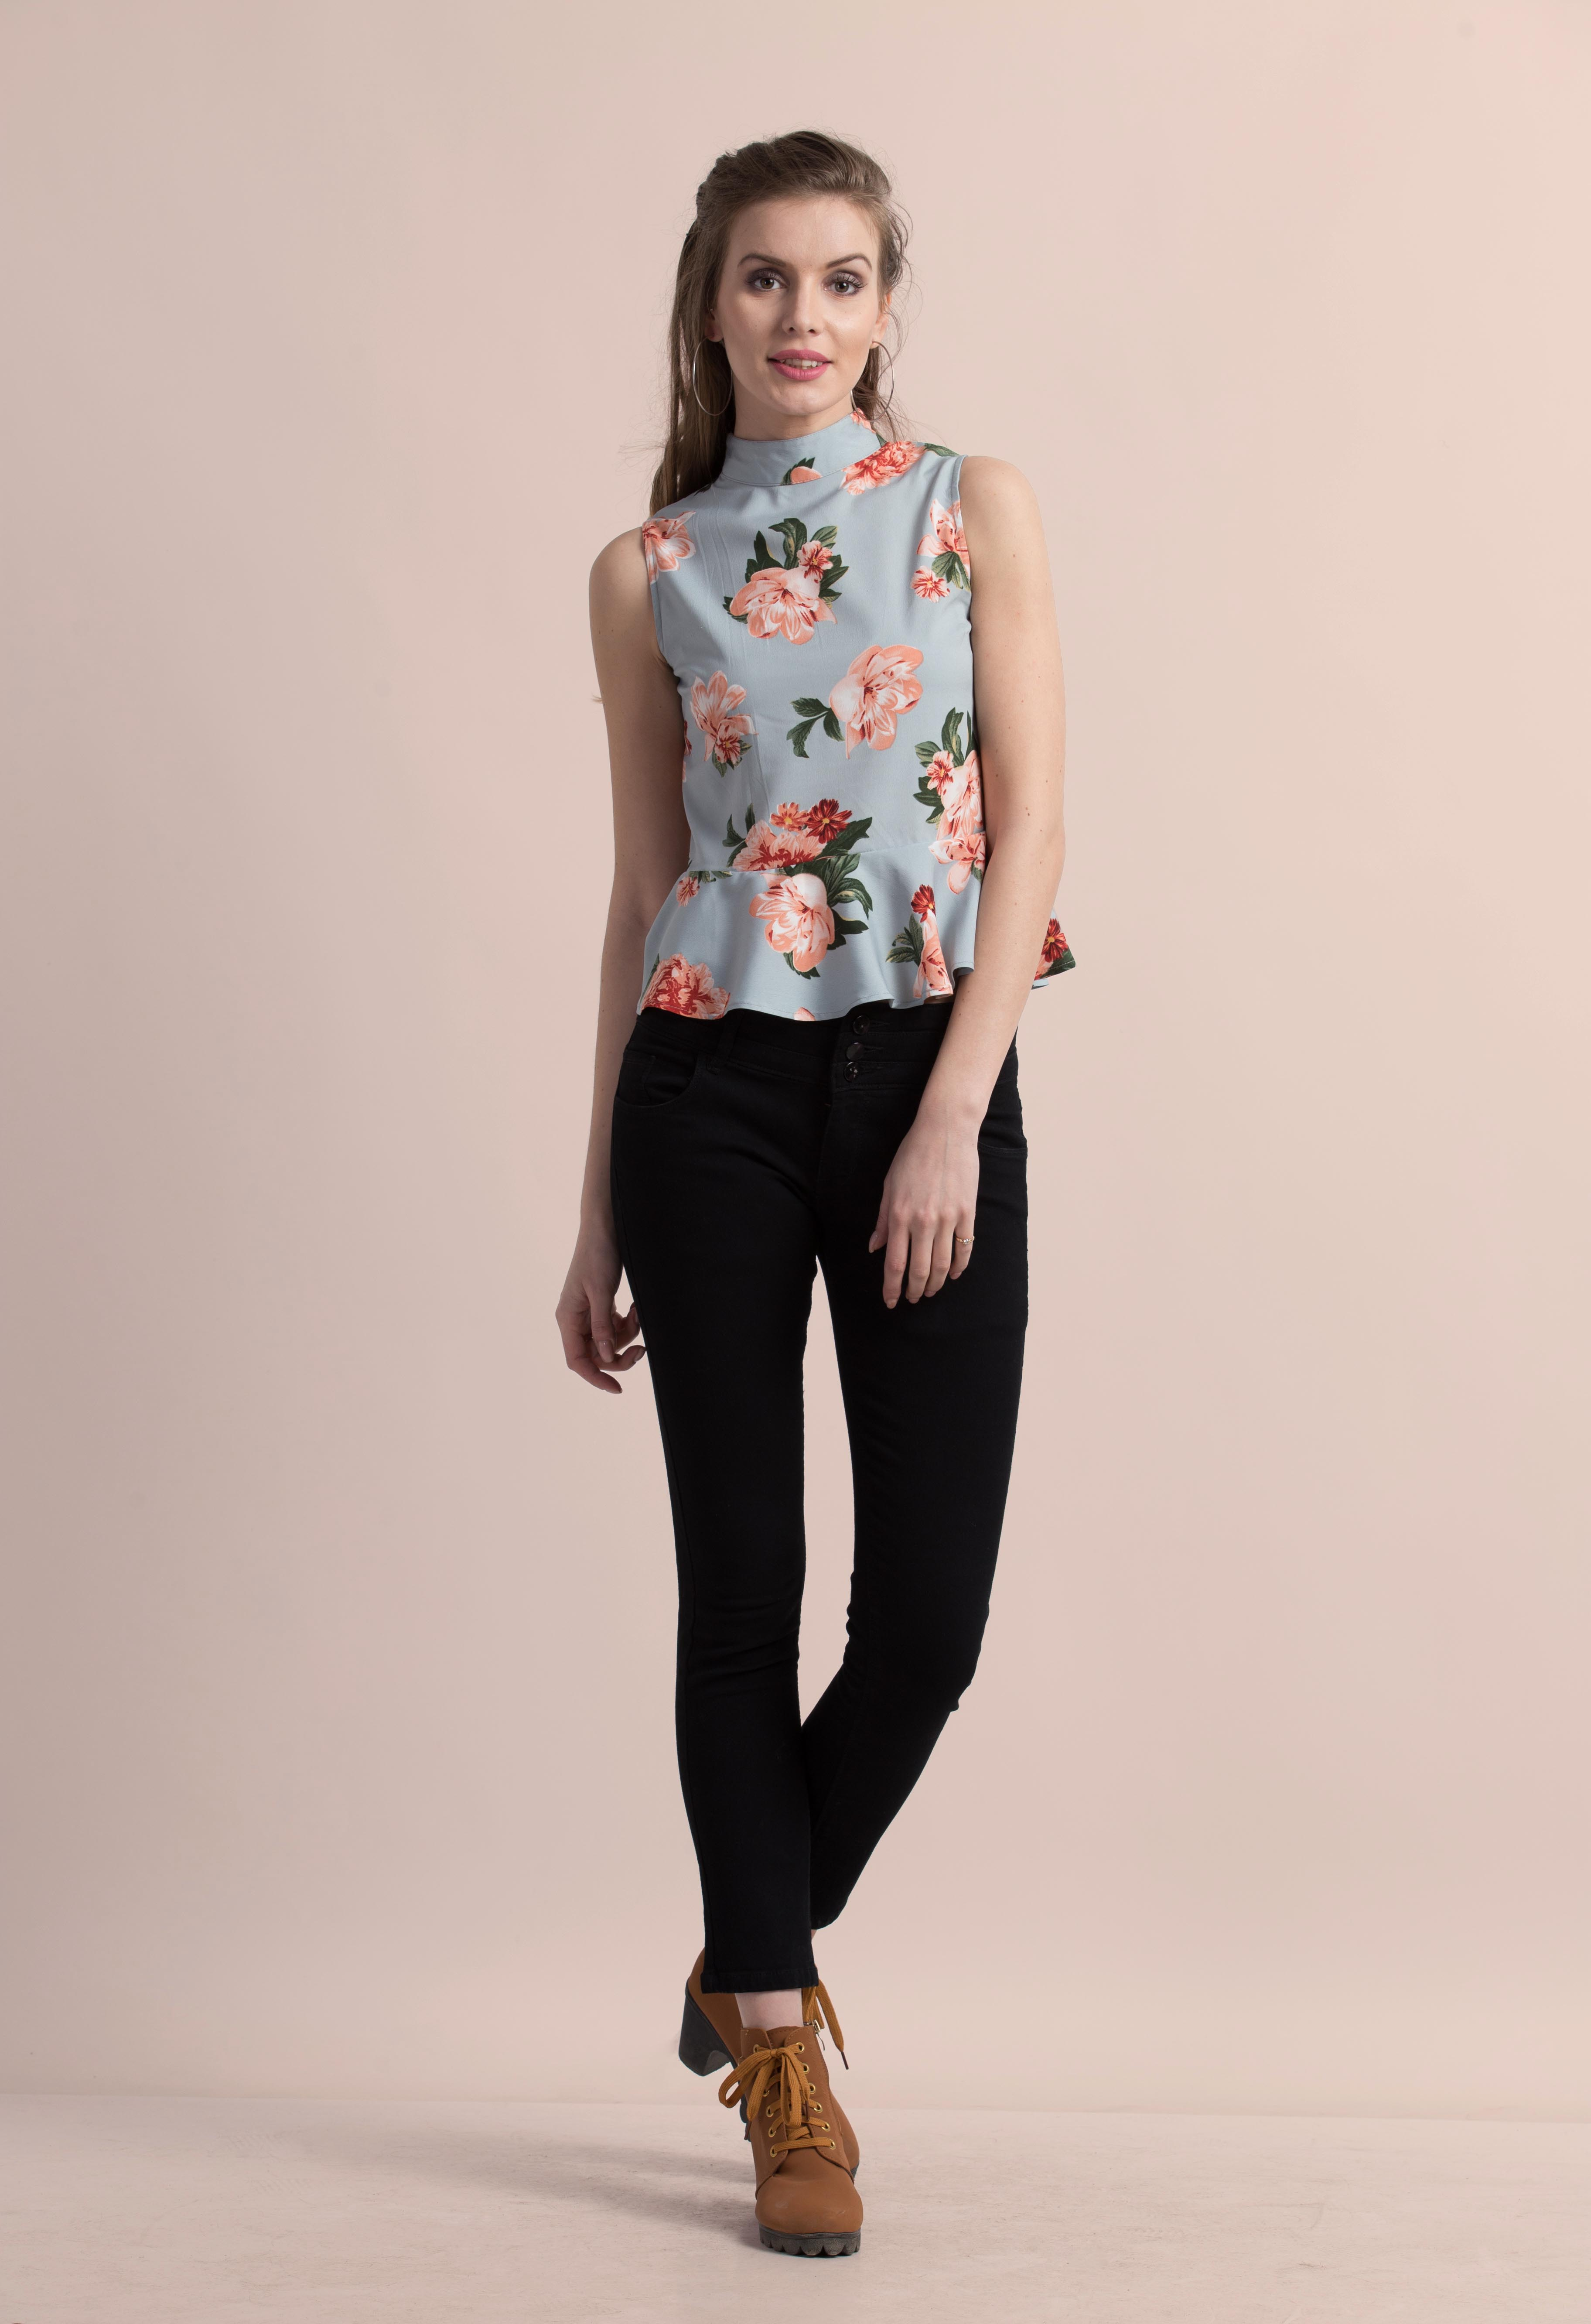 Folle Floral Print Blue High Neck Party Top